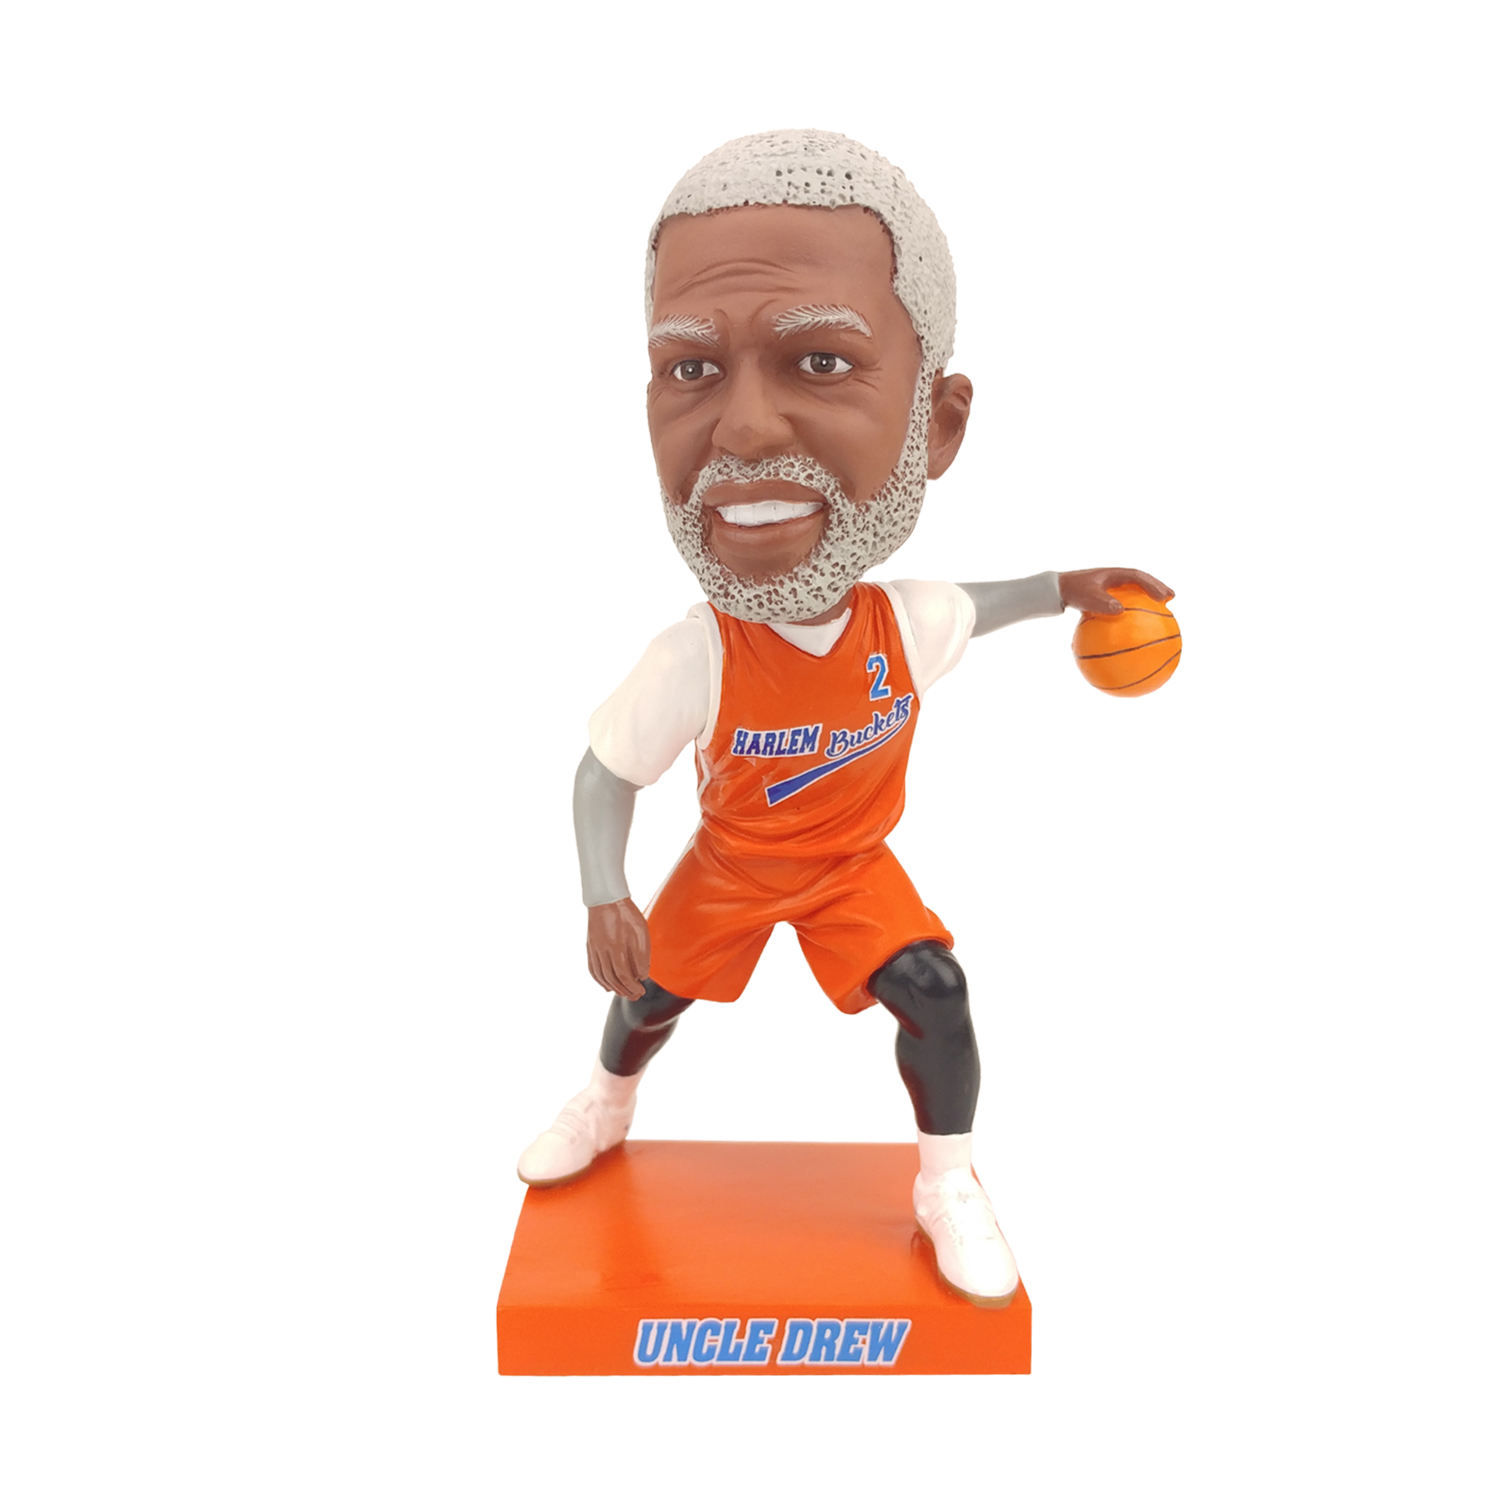 925c932e8ea3 Uncle Drew Bobbleheads Archives - Collectible Bobbleheads by Kollectico